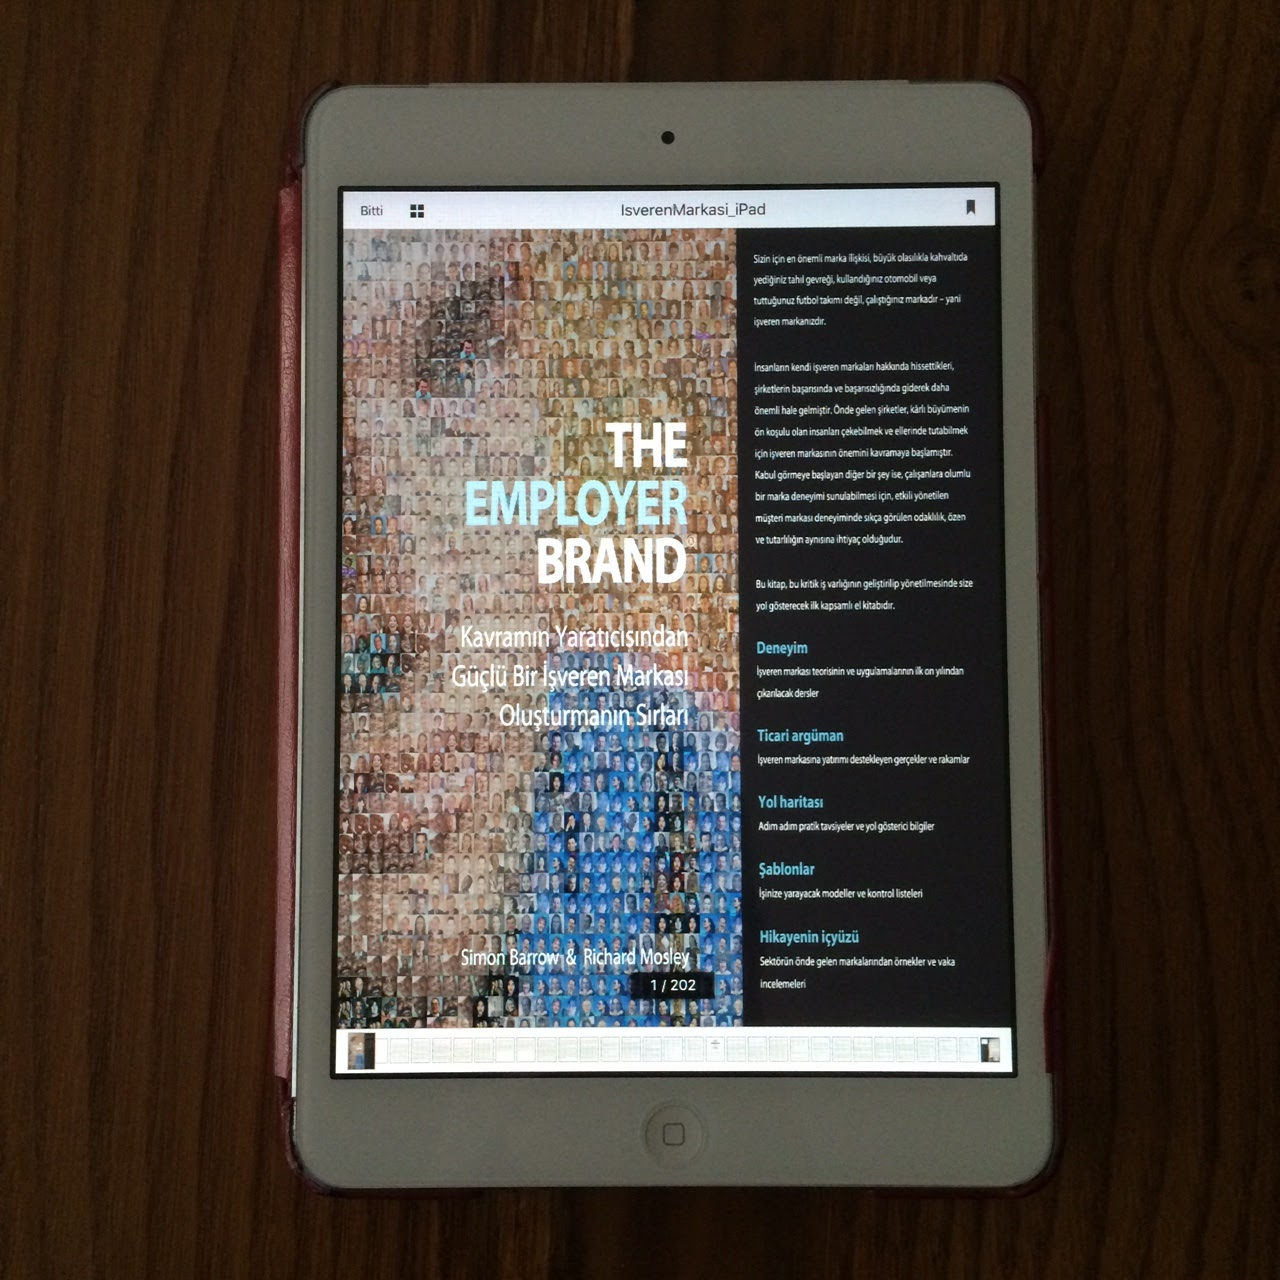 The Employer Brand - Kavramin Yaraticisindan Guclu Bir Isveren Markasi Olusturmanin Sirlari (Kitap)